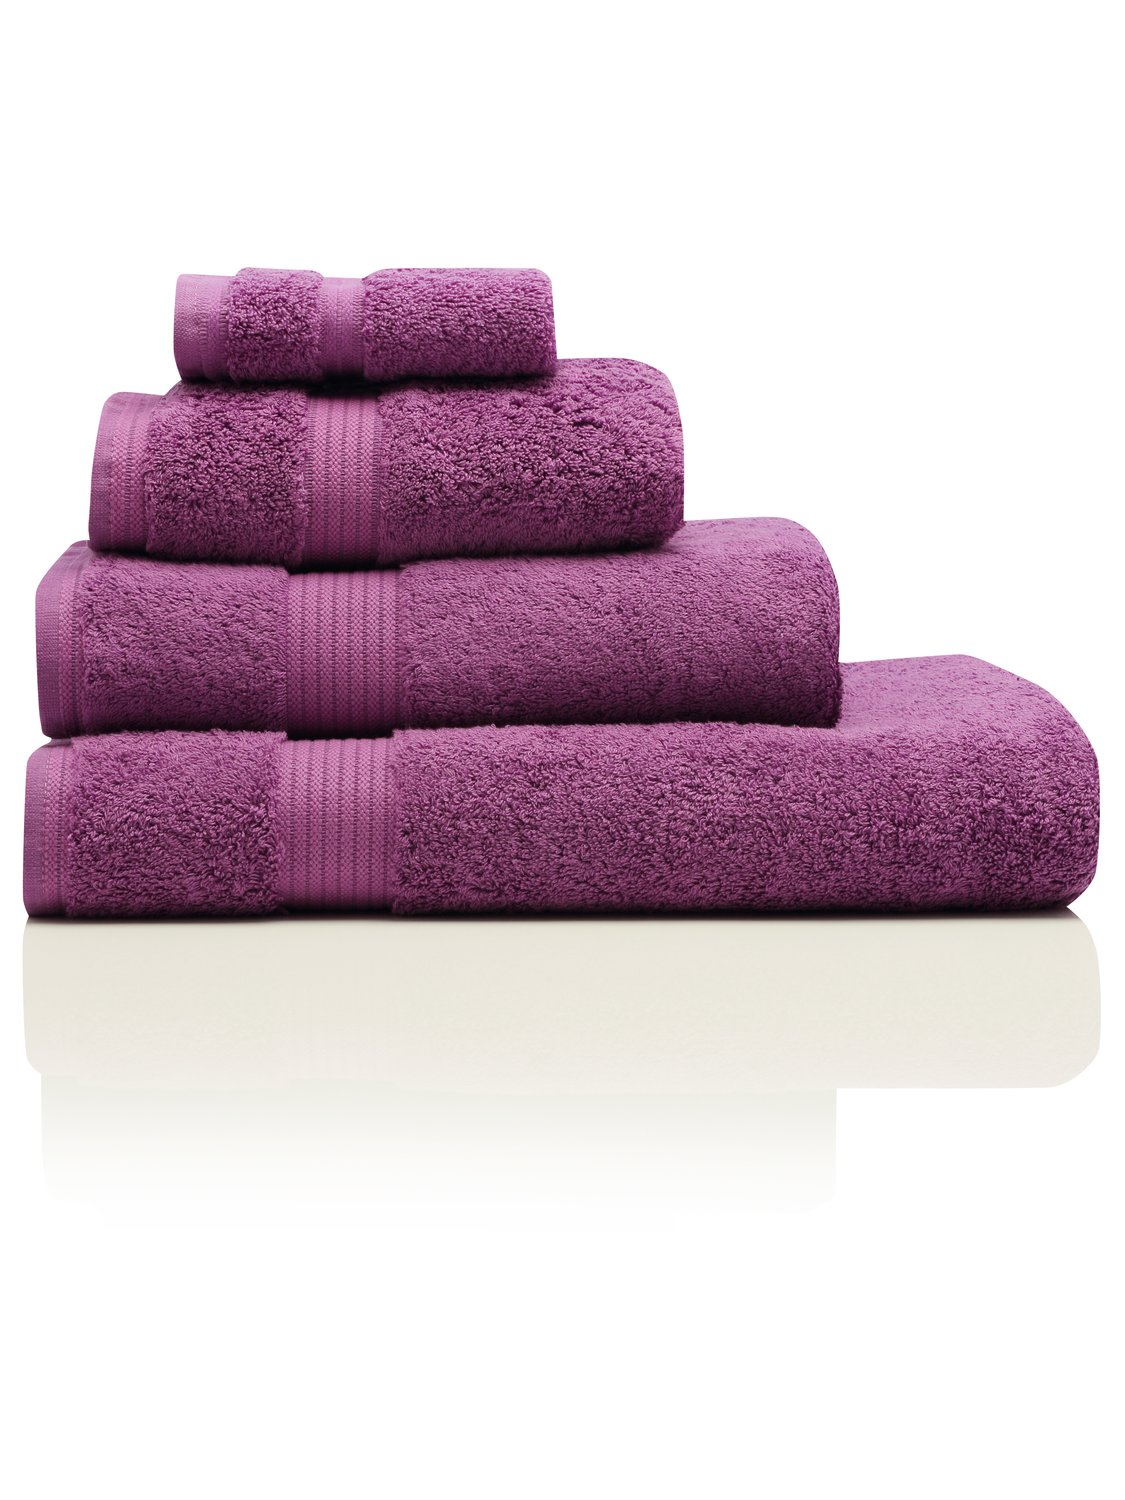 Image of 100% Combed Cotton 580Gsm Luxury Soft And Absorbent Bath Sheet - Orchid